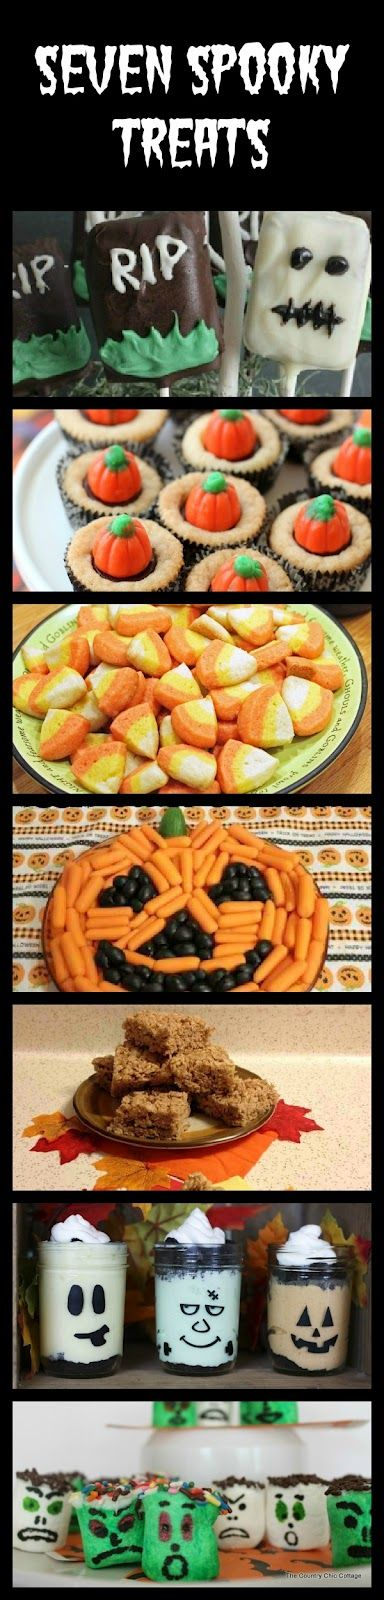 Seven Spooky Treats for your Halloween and Fall baking